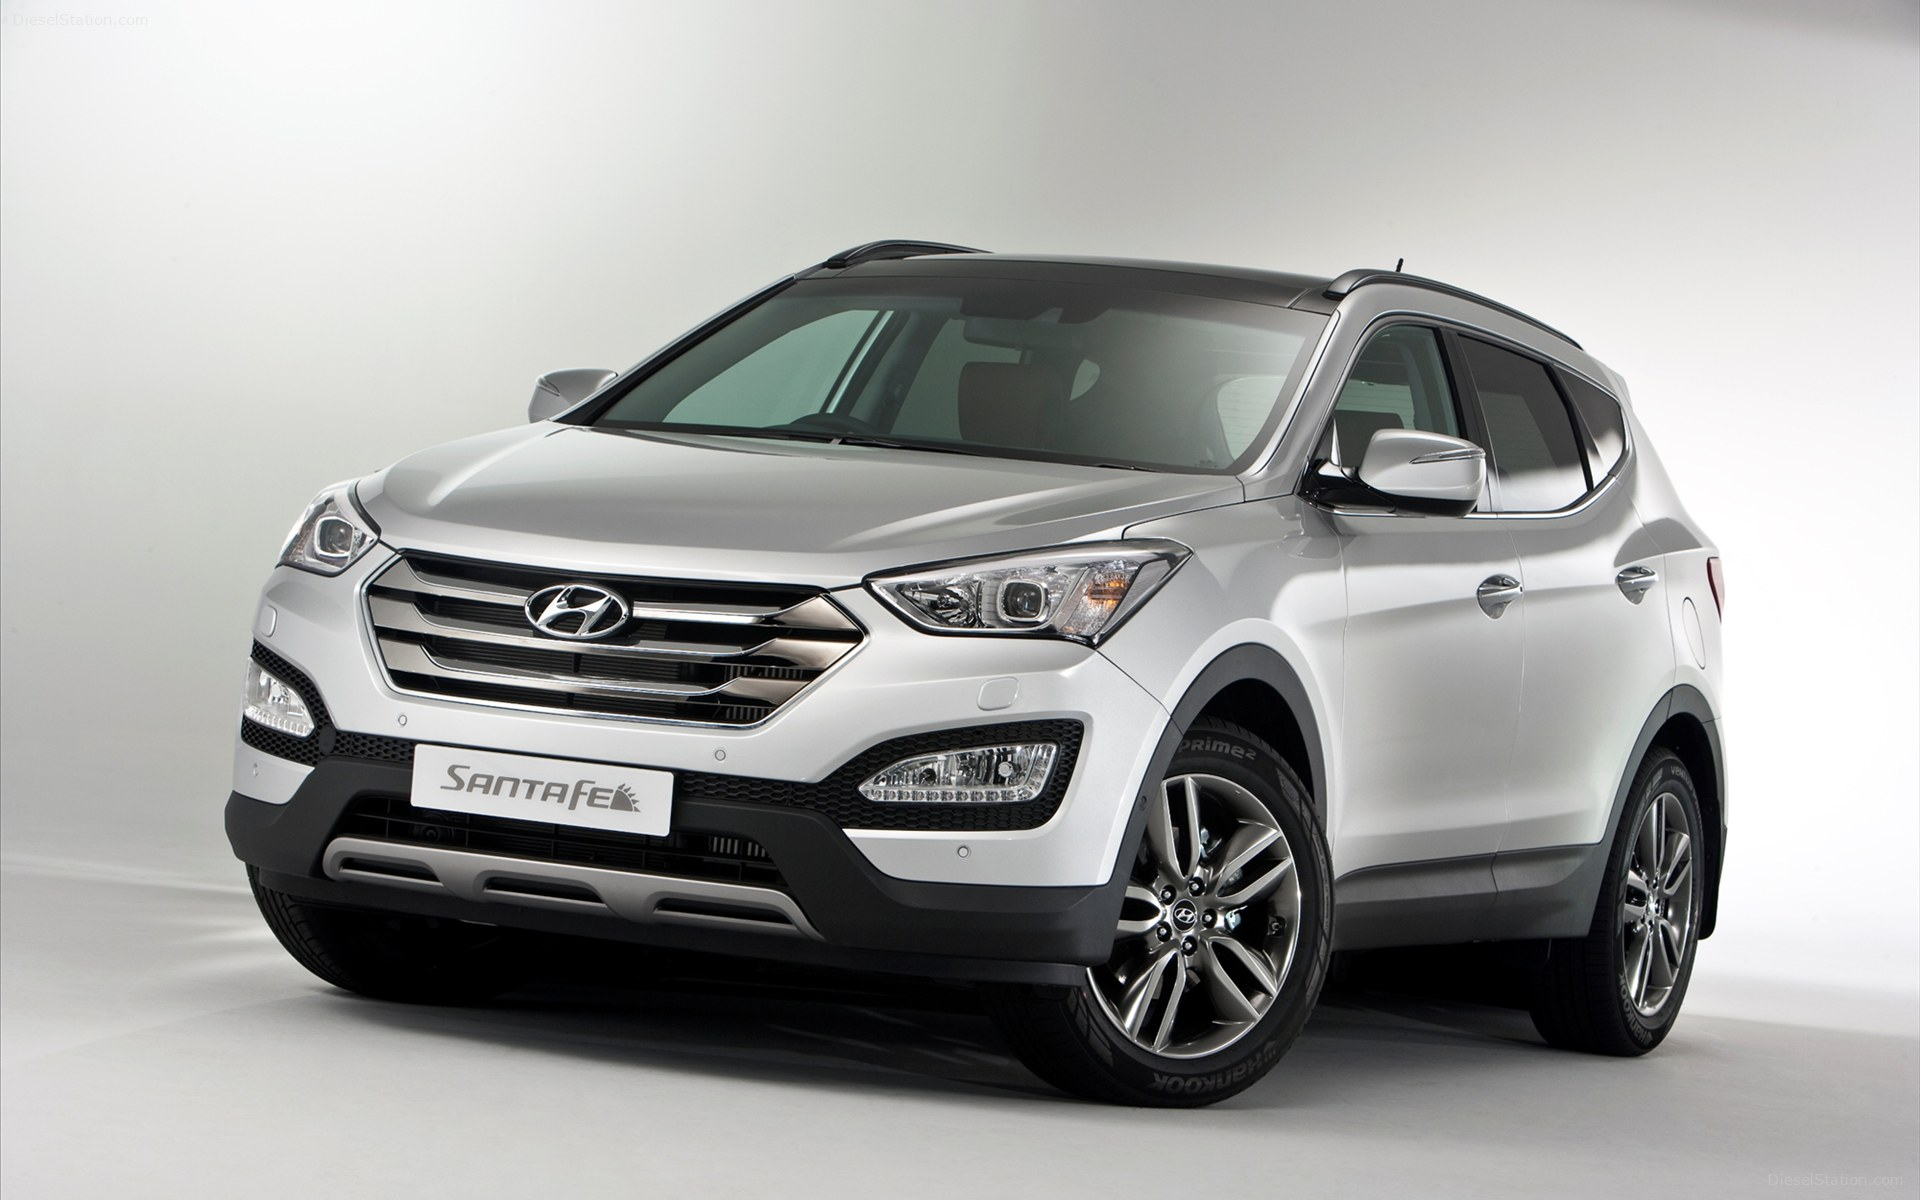 The Hyundai Santa Fe is a deceptively swift and accomplished SUV that loves to get its tyres muddy from time to time.